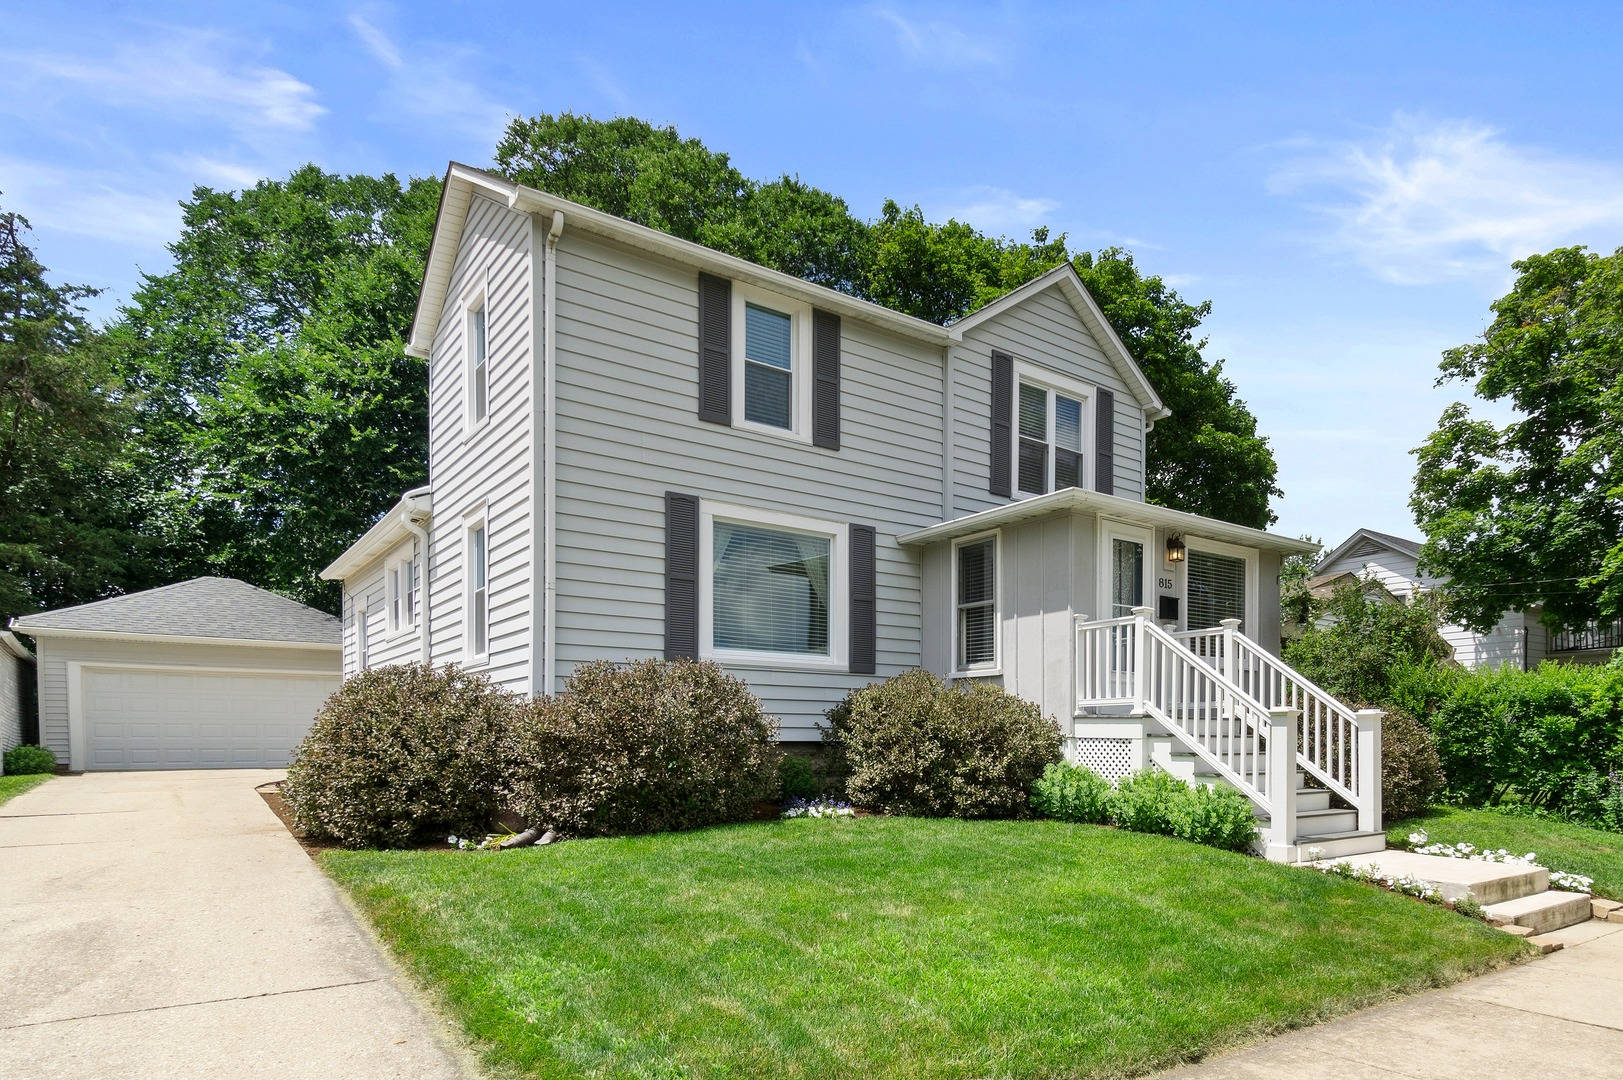 815 South 3RD, ST. CHARLES, Illinois, 60174